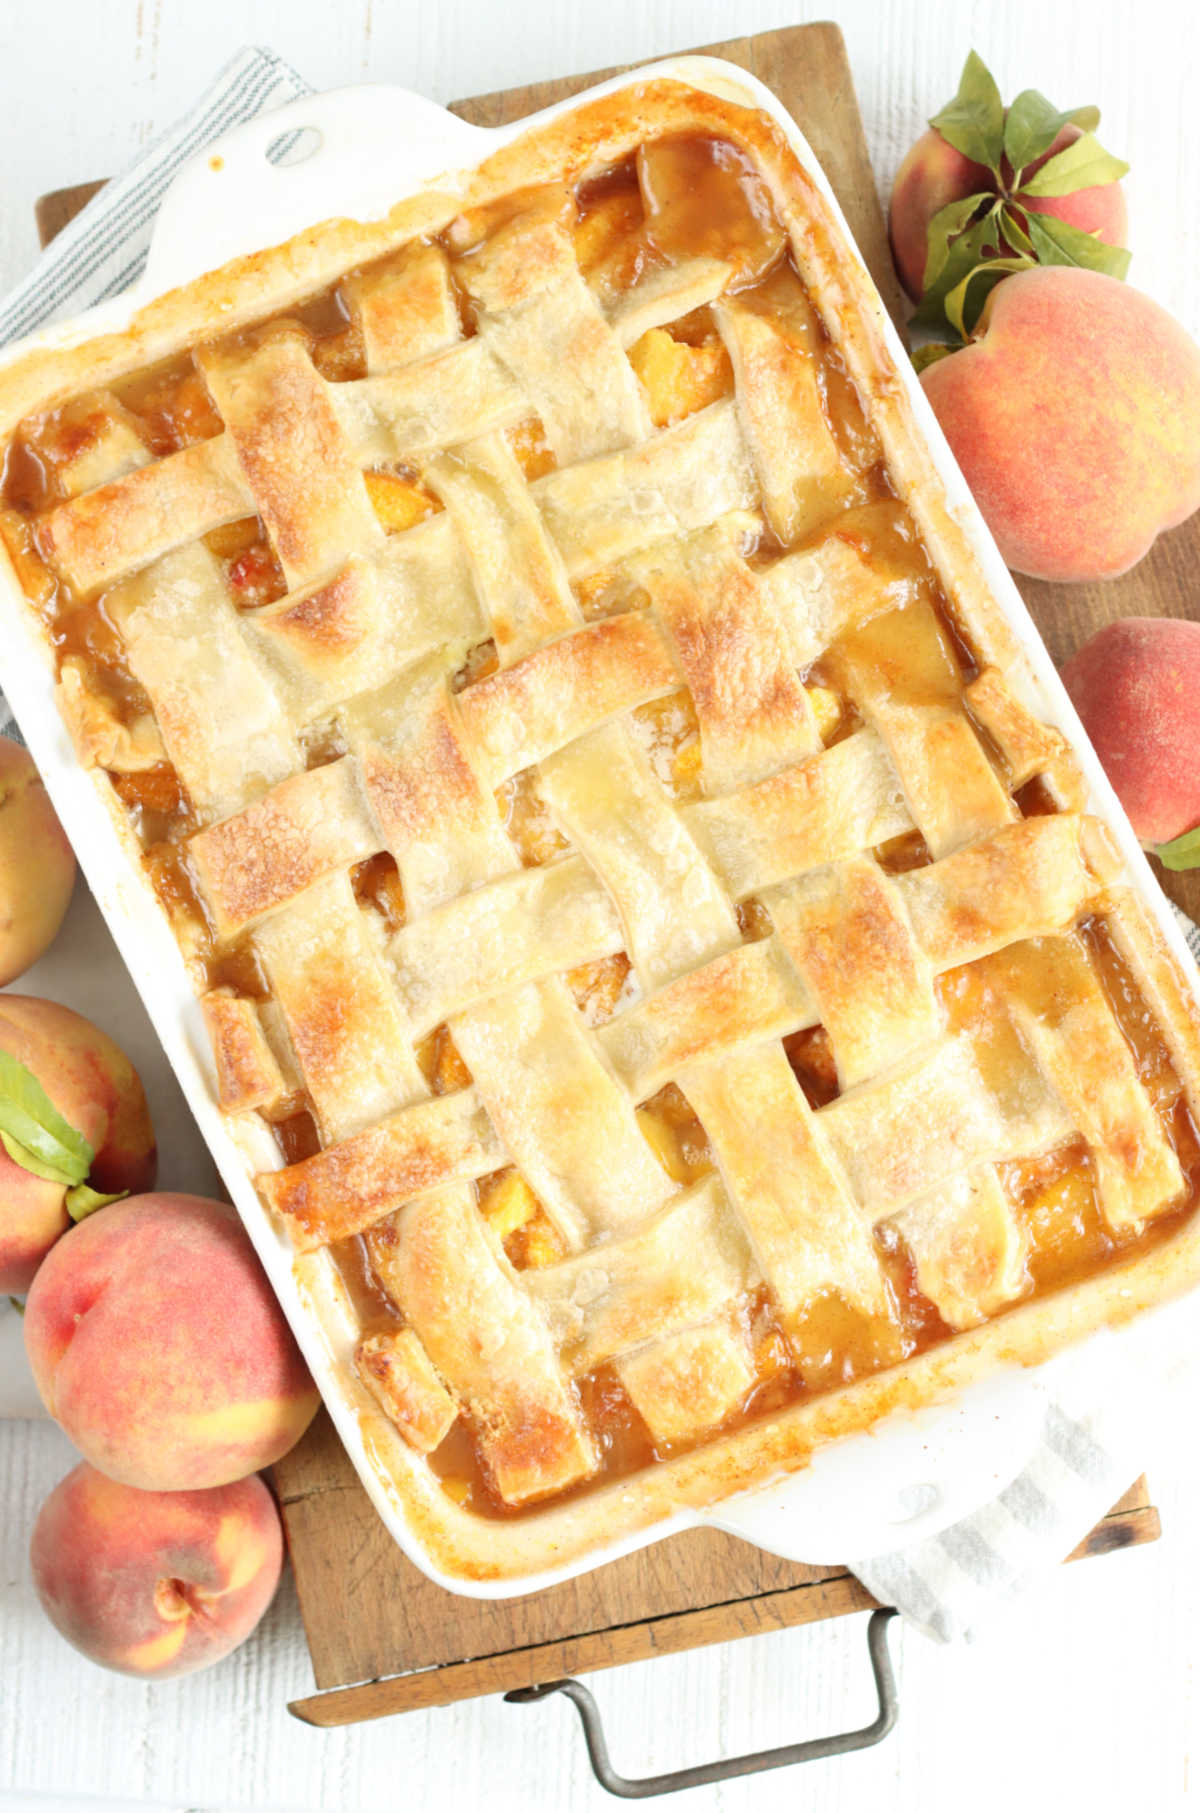 Cobbler with peaches and lattice pie crust in white rectangle baking dish on wooden cutting board, fresh peaches around.